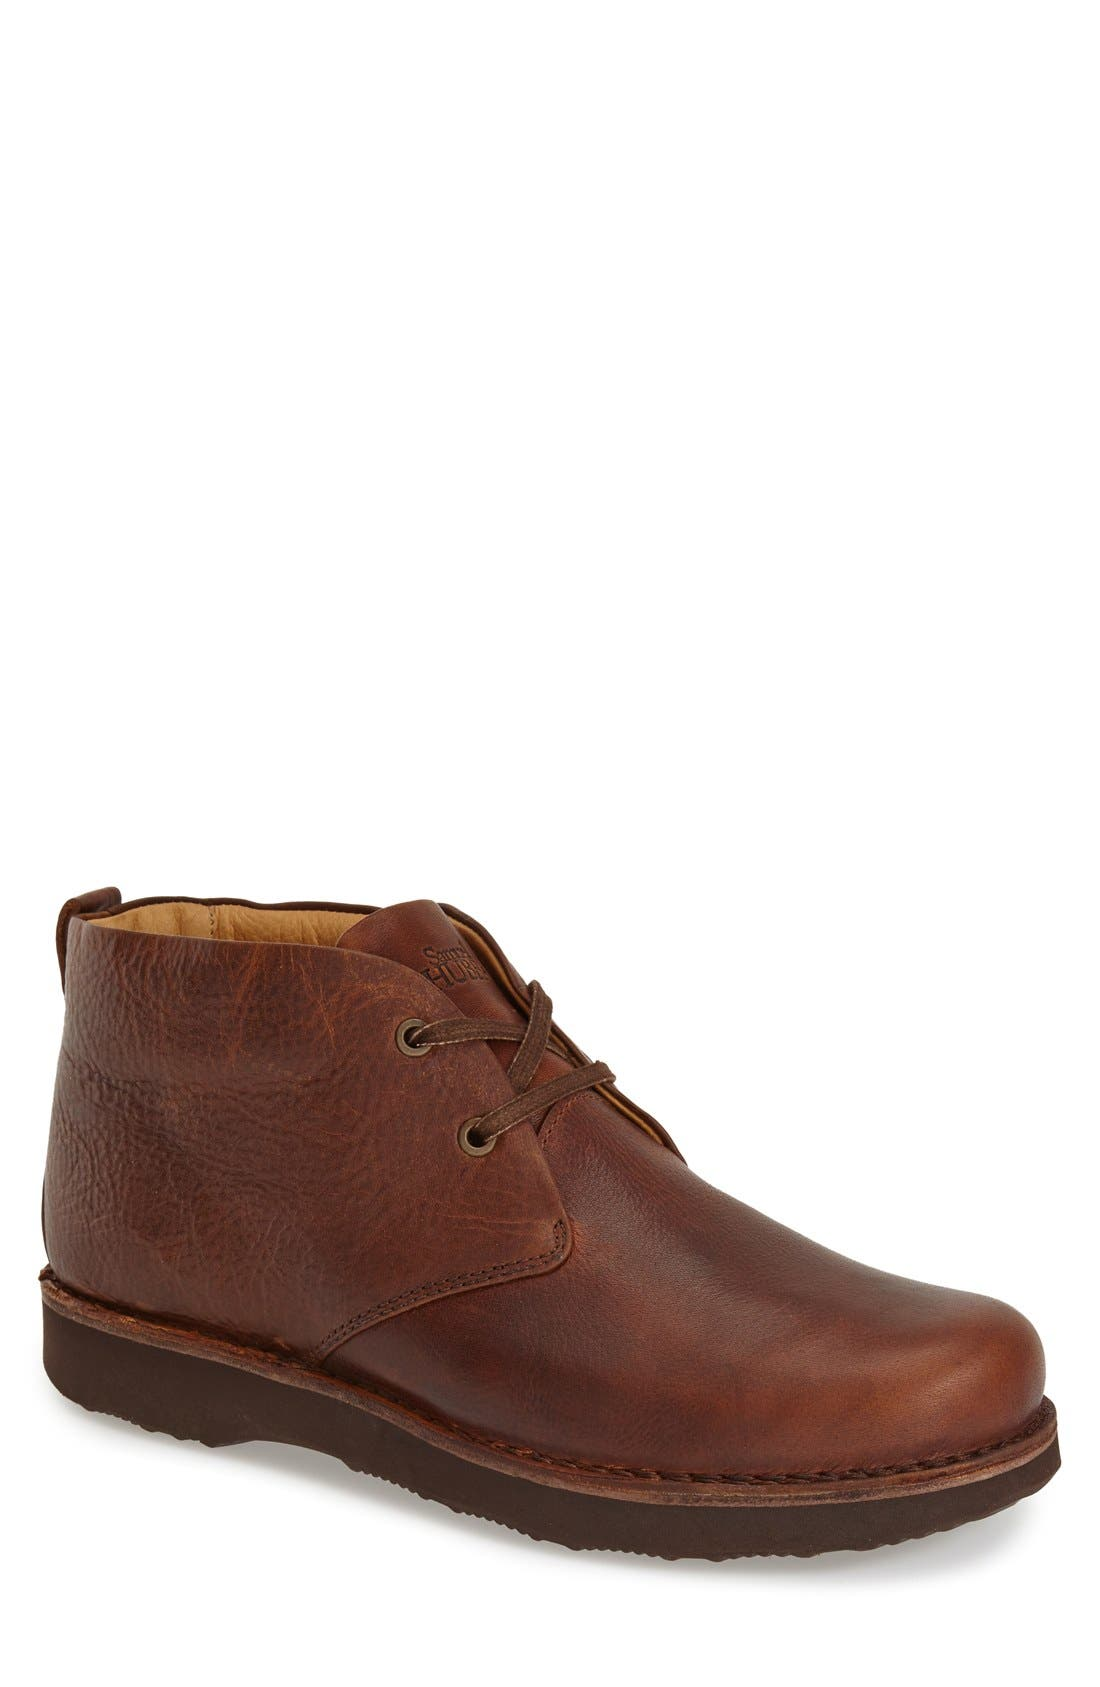 'Boot-Up' Chukka Boot,                             Main thumbnail 1, color,                             210